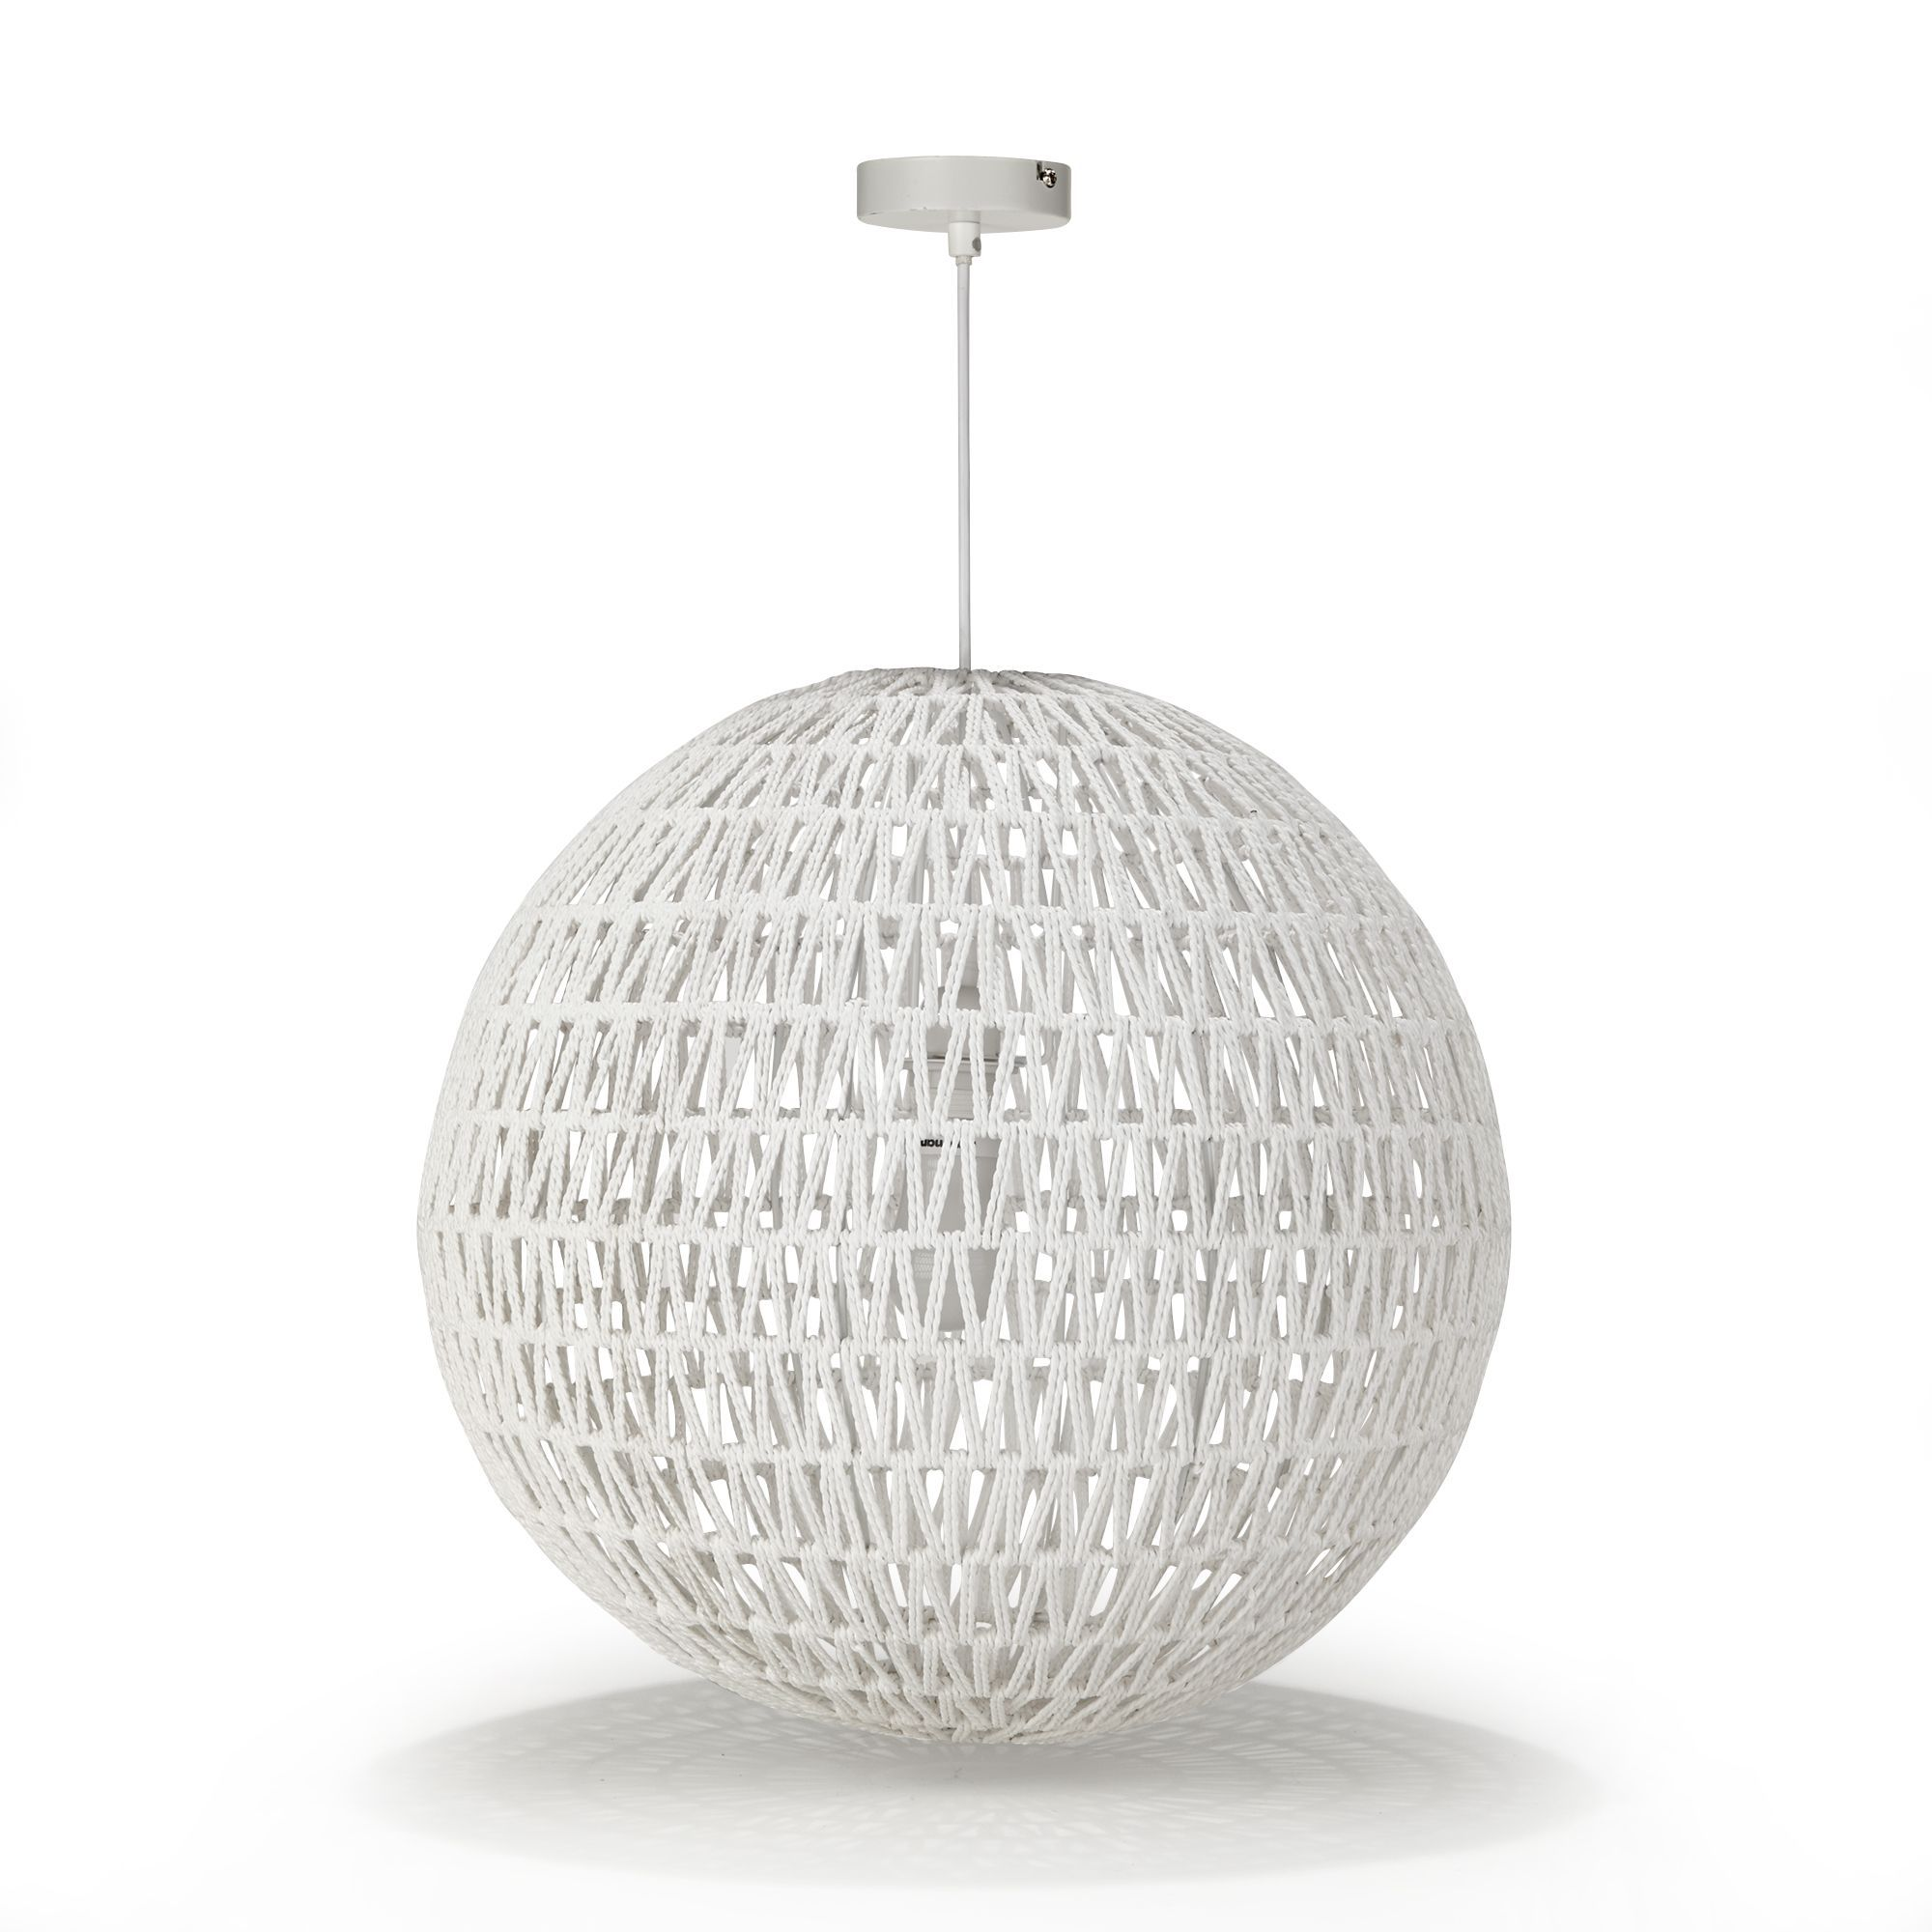 Suspension boule en cordes blanches non lectrifi e blanc for Luminaire suspension blanc